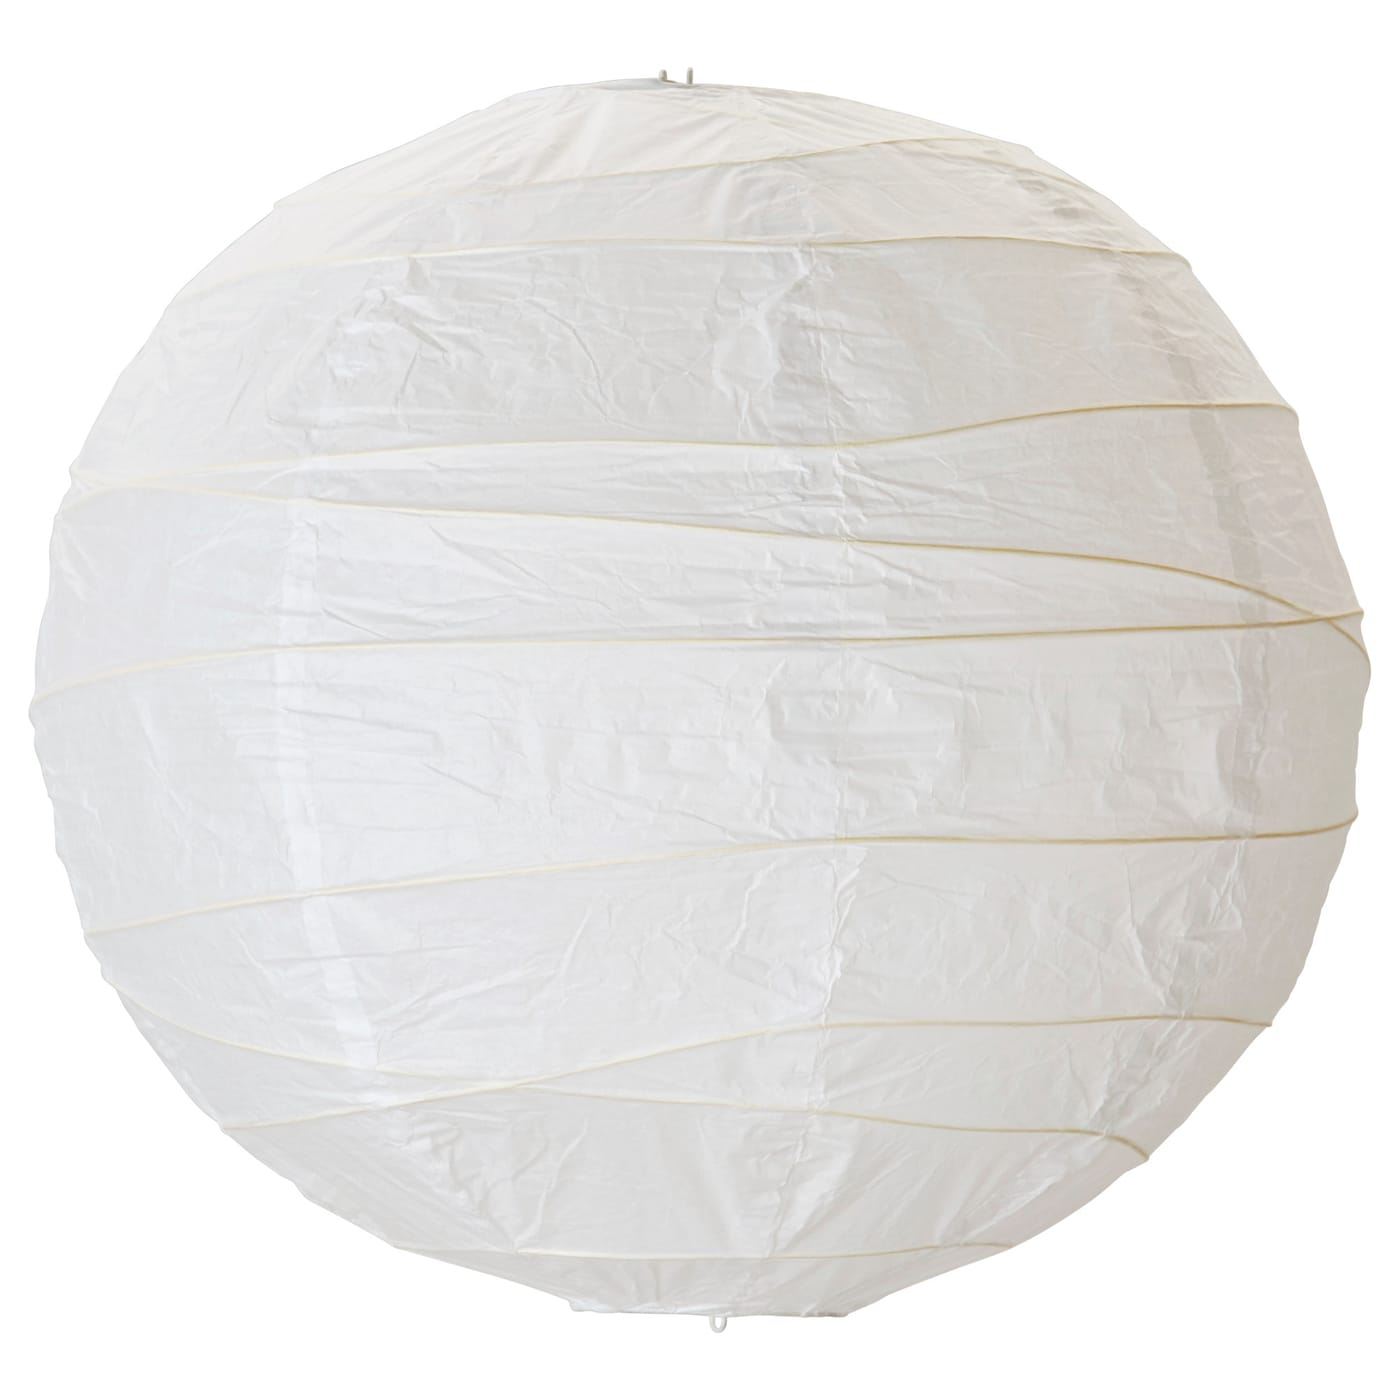 Regolit pendant lamp shade white 45 cm ikea - Boule a the ikea ...